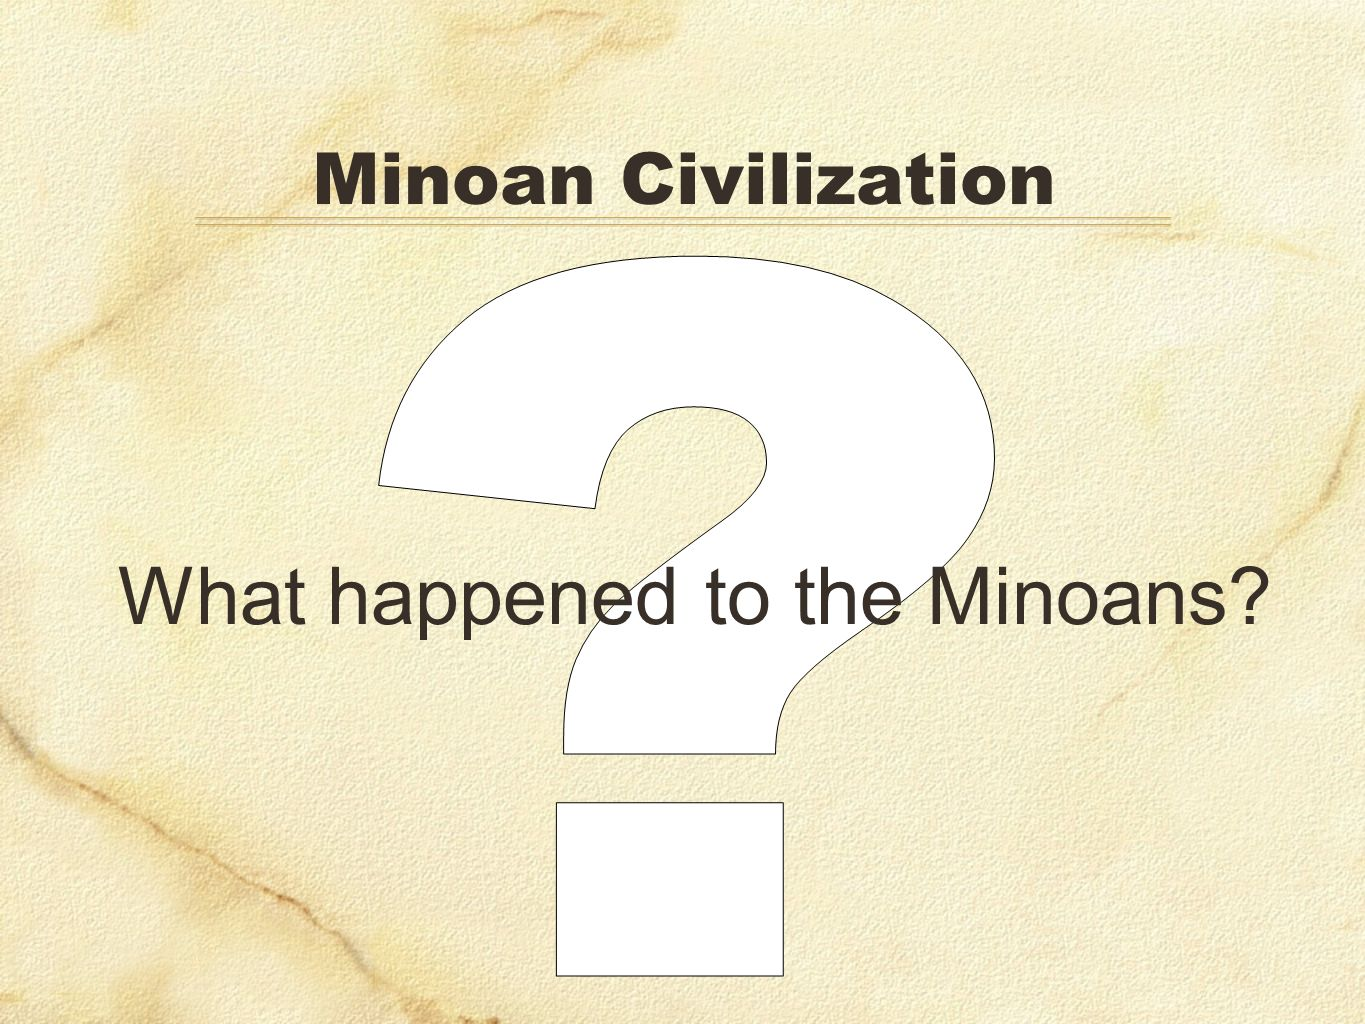 What happened to the Minoans